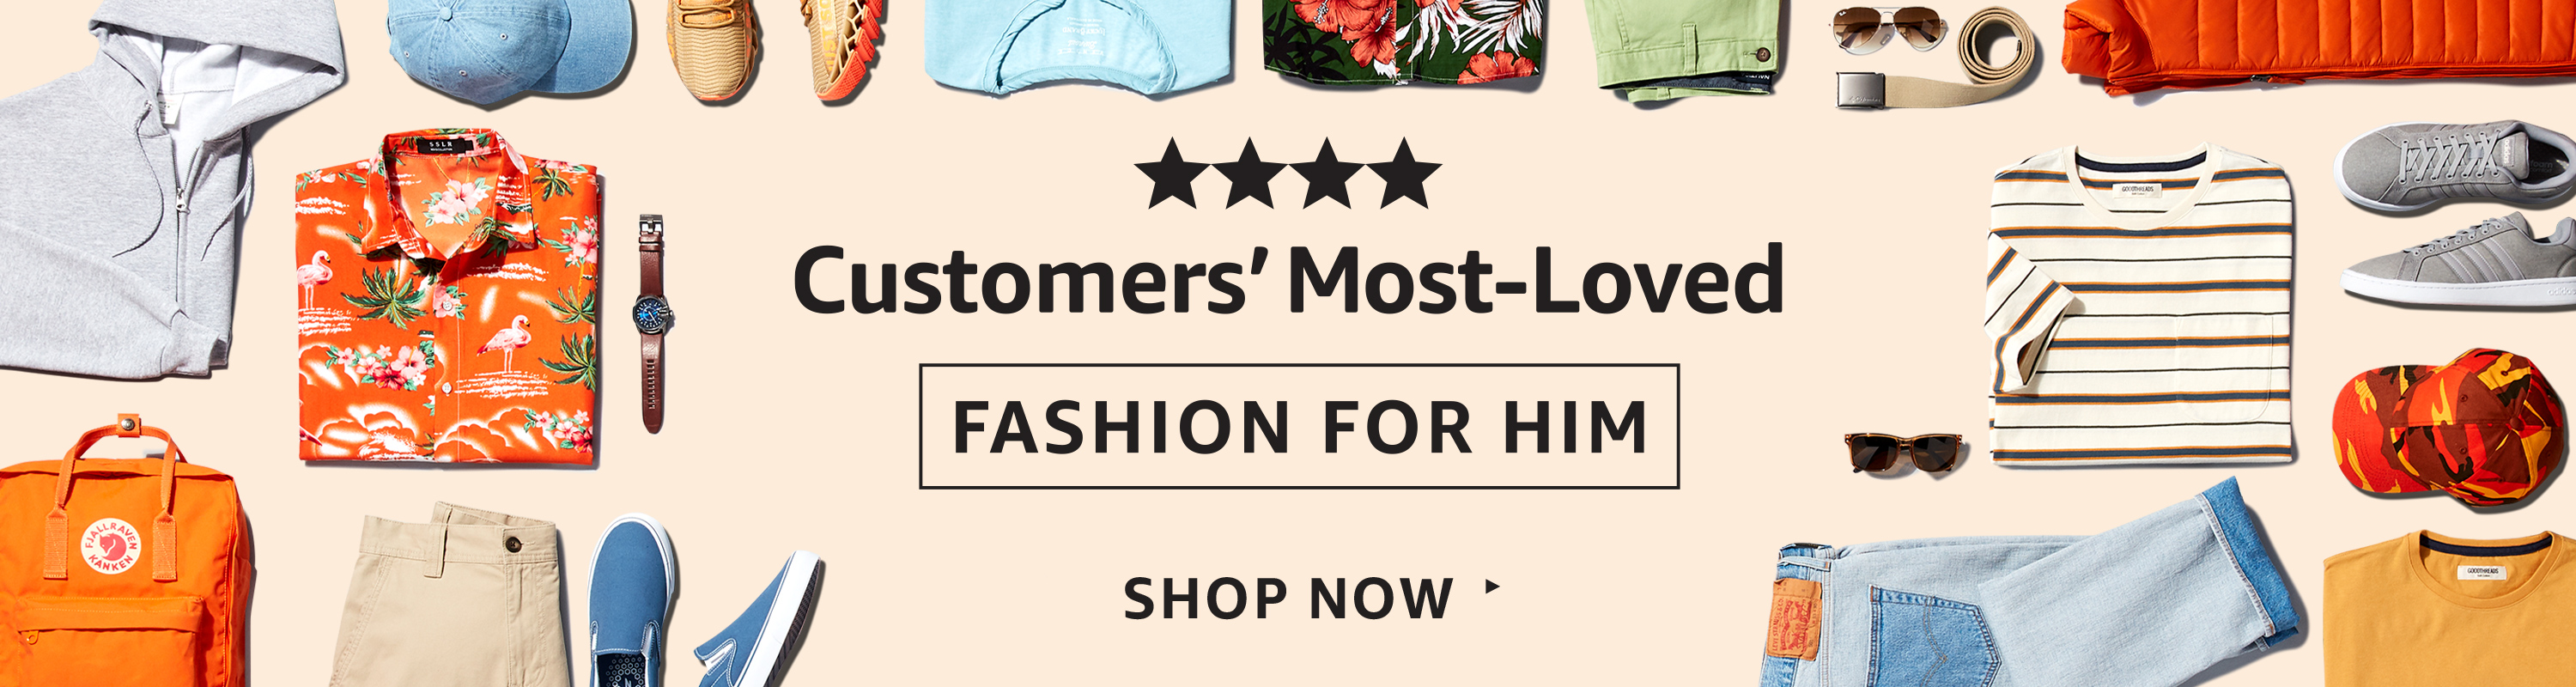 Customers' Most-Loved Fashion for Him